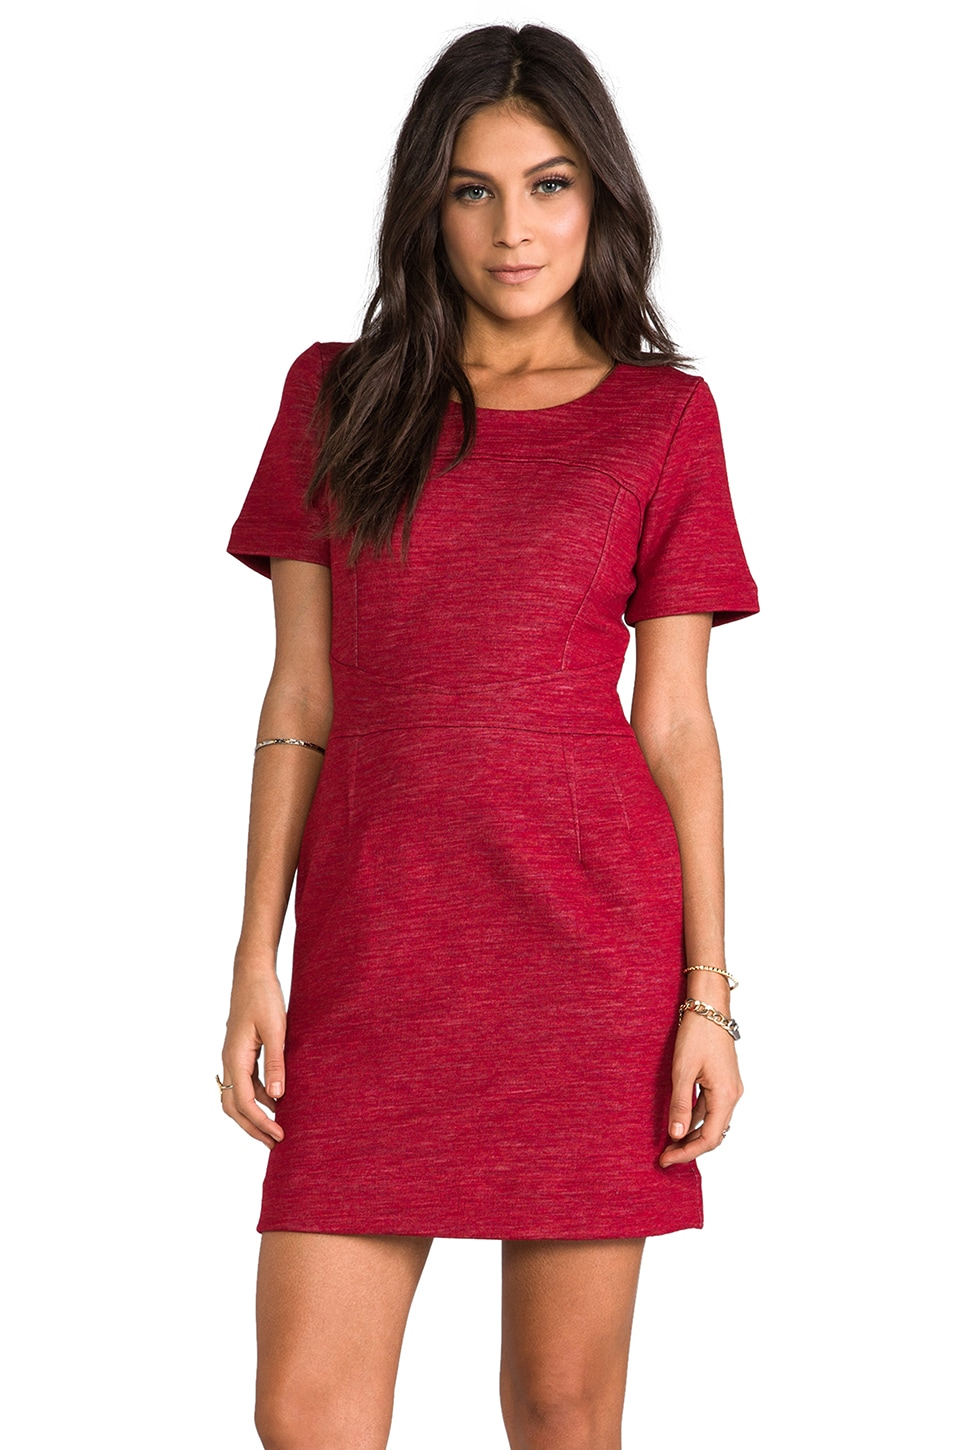 Marc by Marc Jacobs Gertrude Wool Dress in Cardinal Red